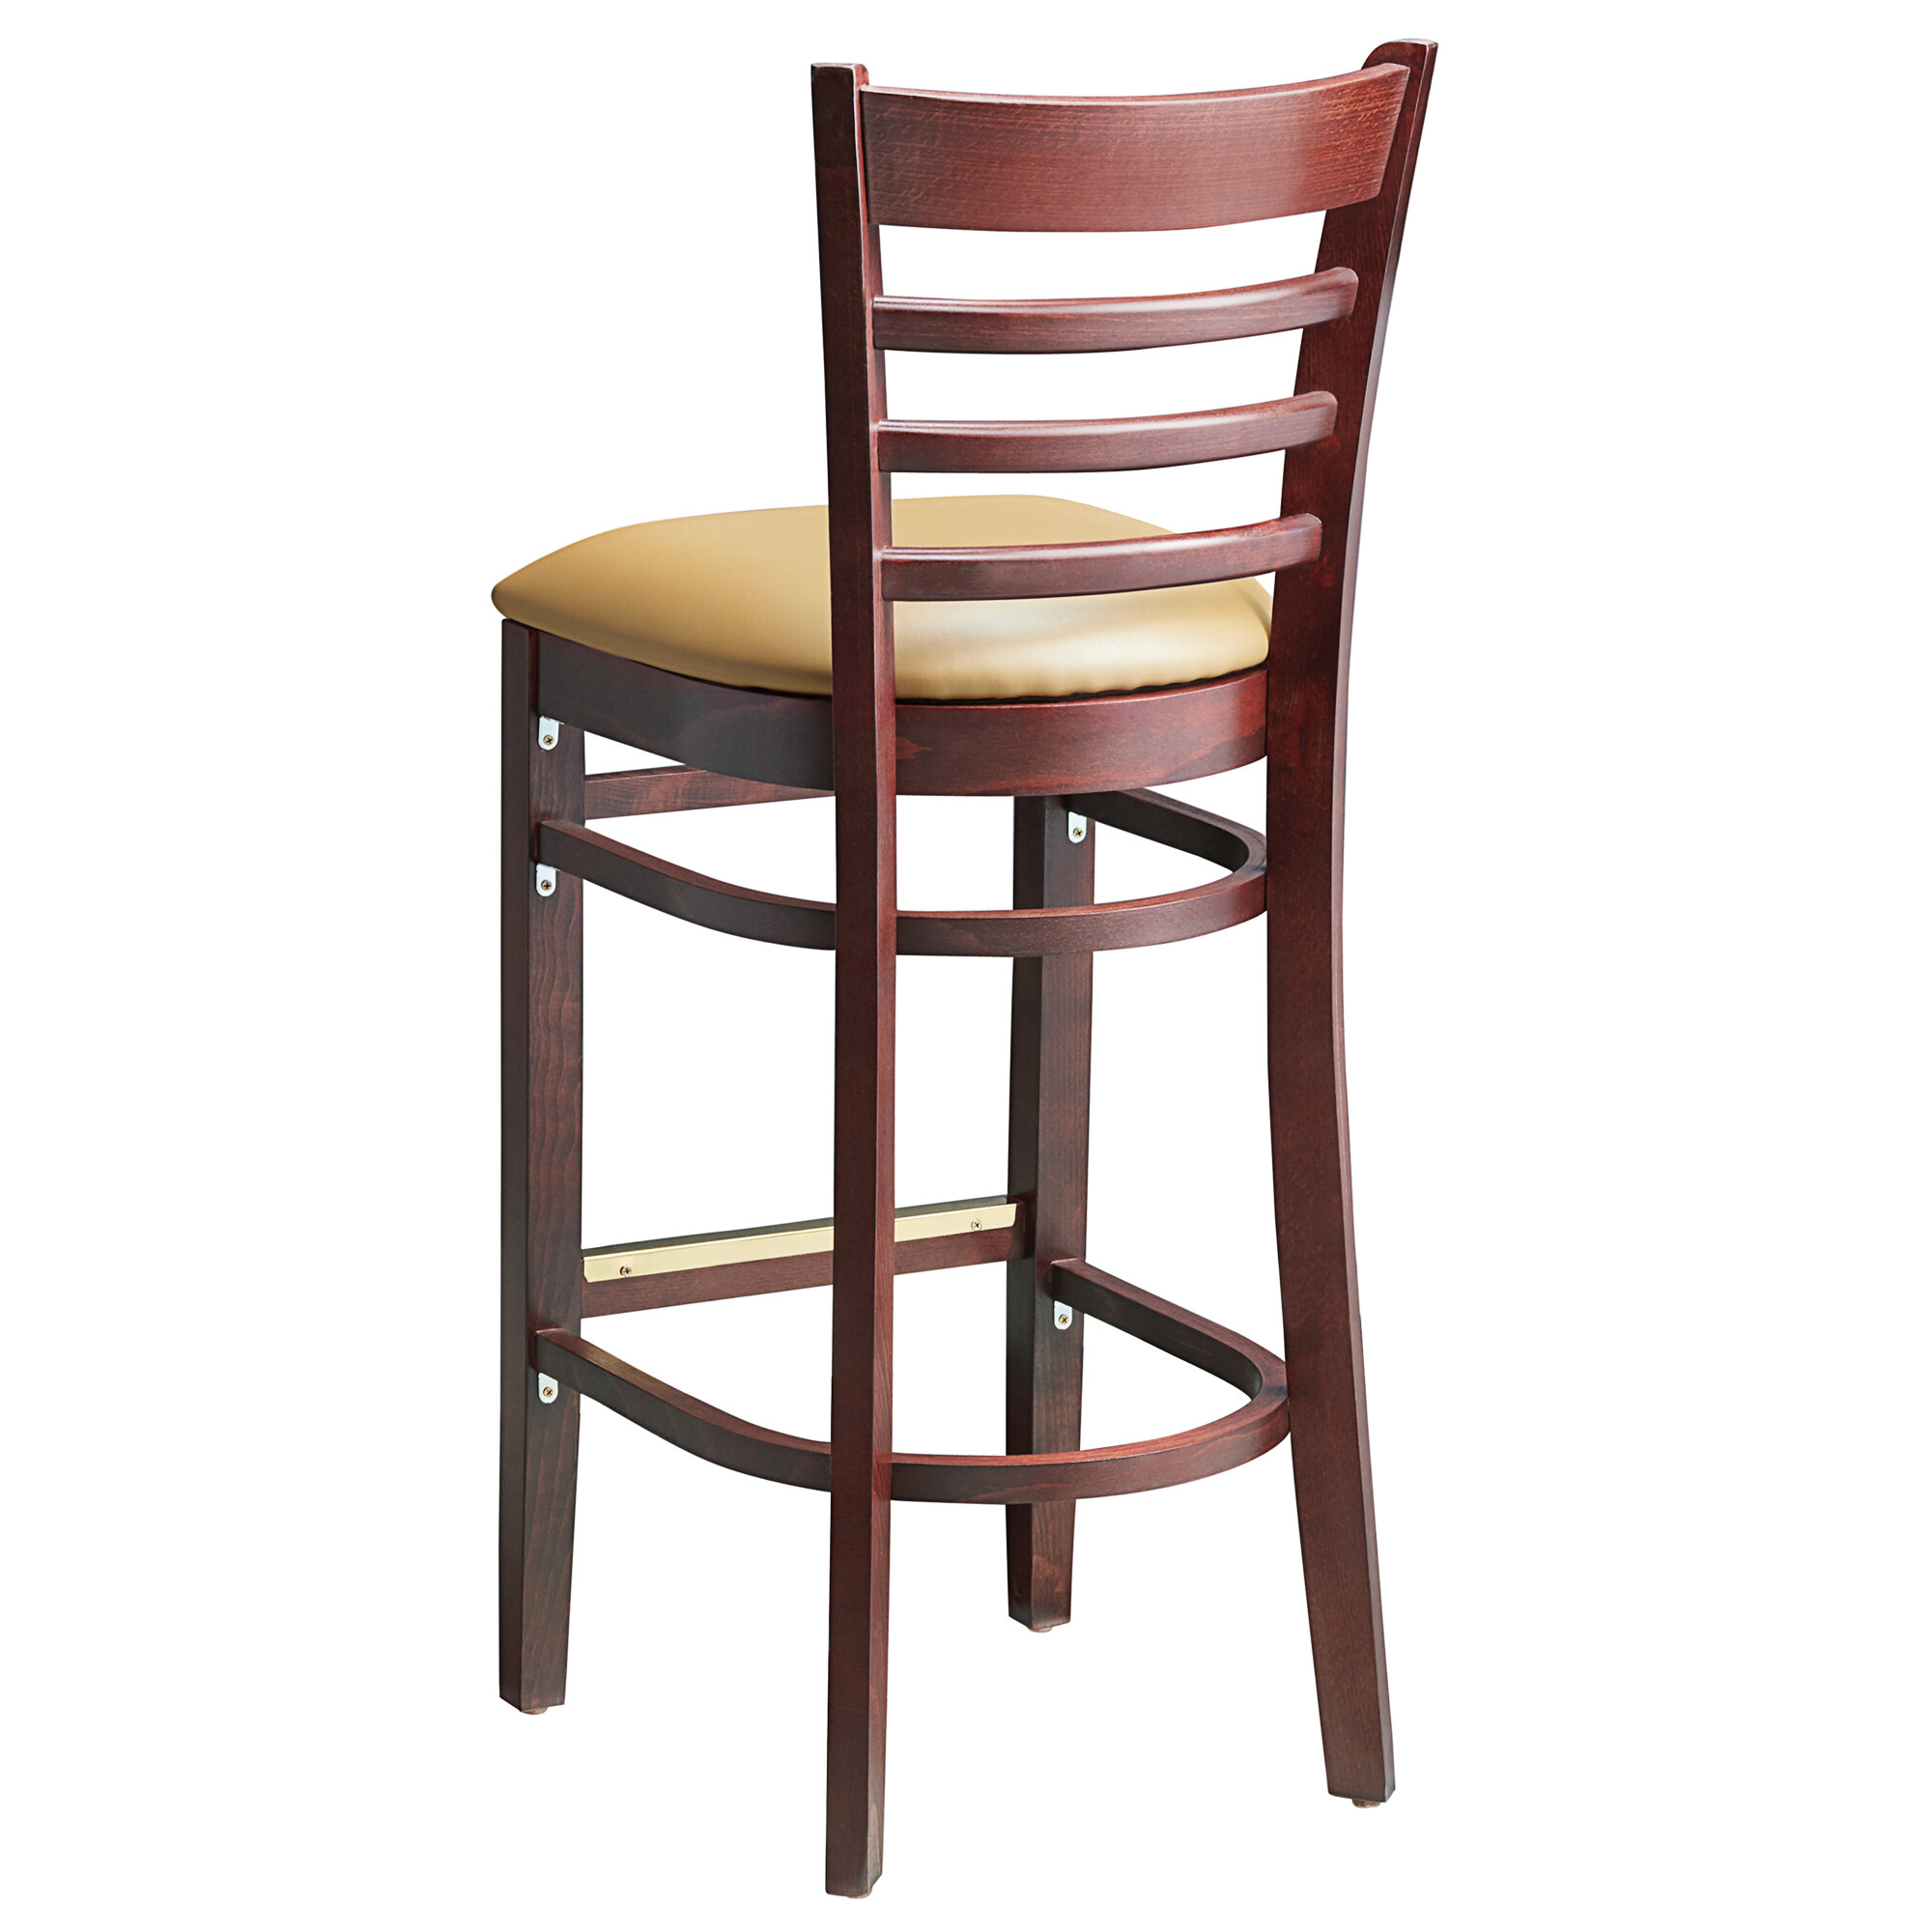 #68 - Mahogany Wood Finished Ladder Back Restaurant Barstool with Light Brown Vinyl Seat